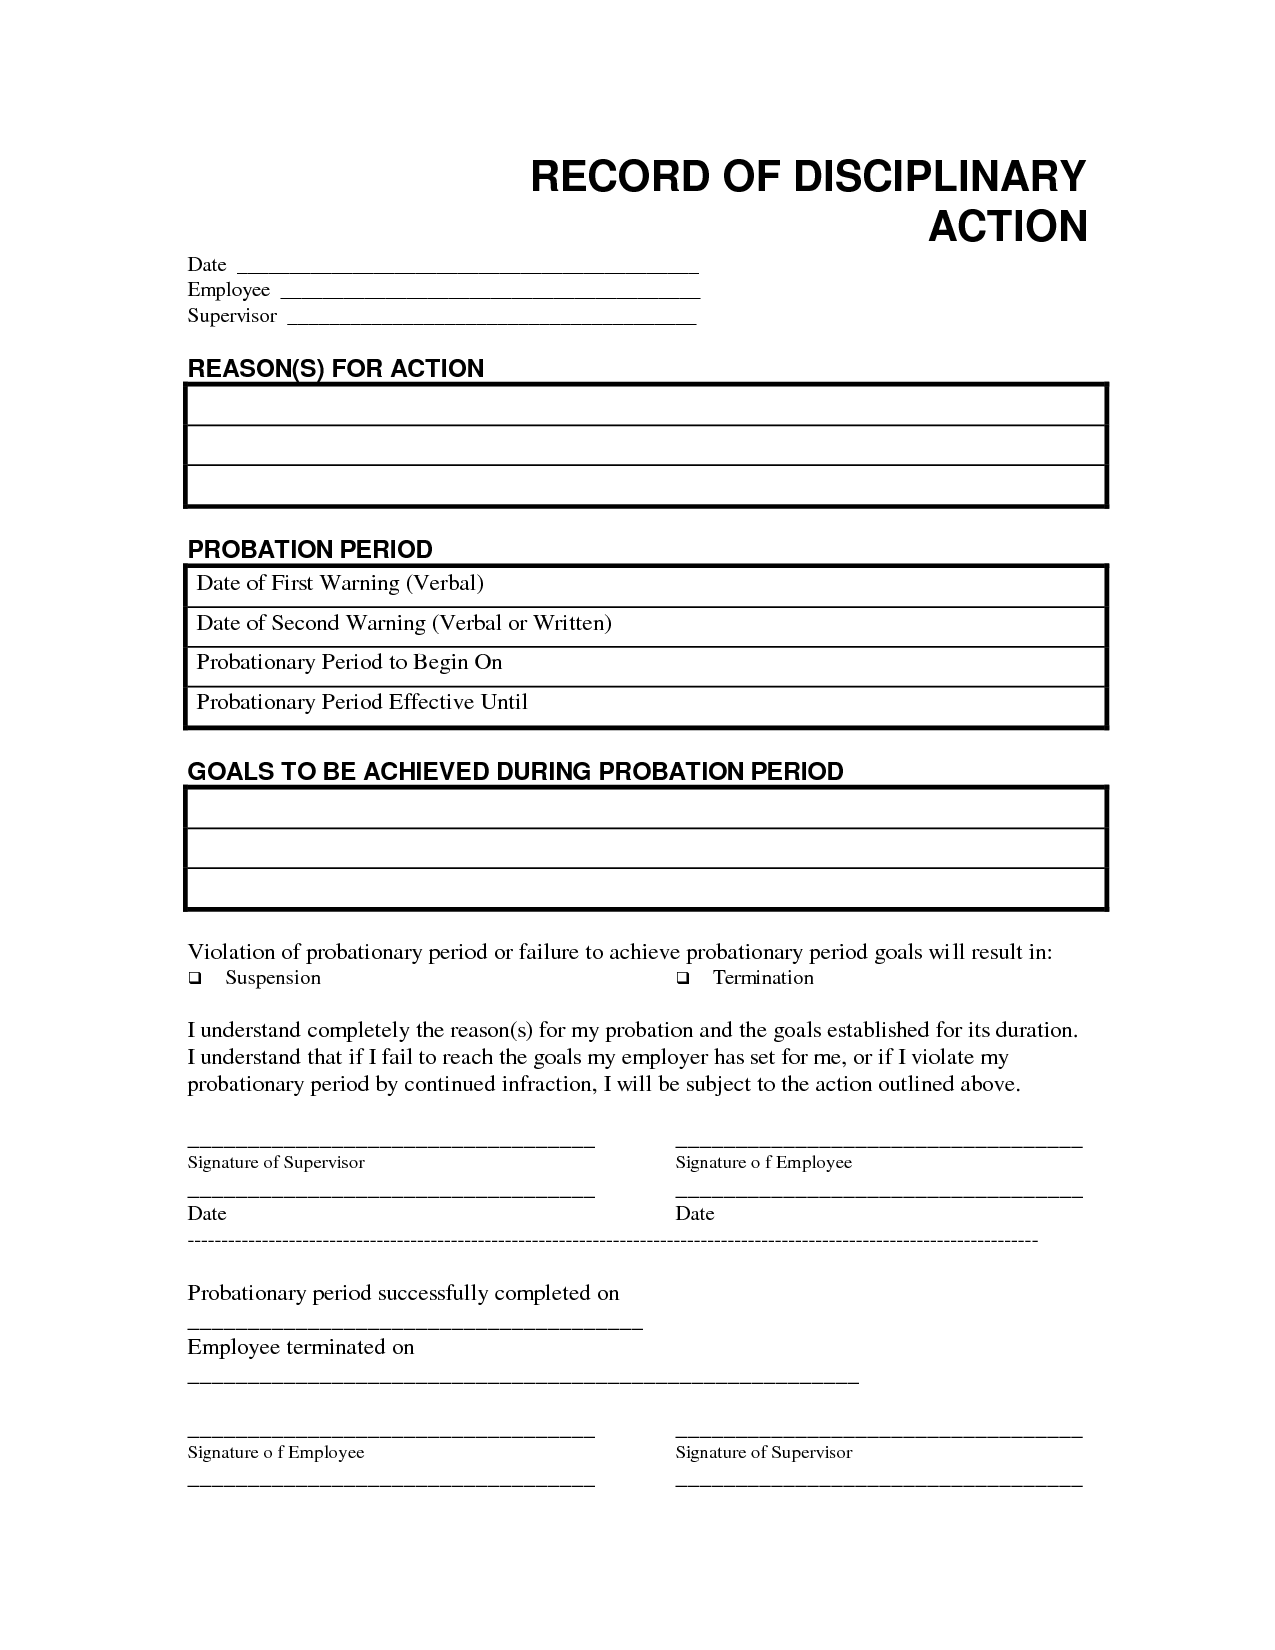 record disciplinary action free office form template by | bar ...